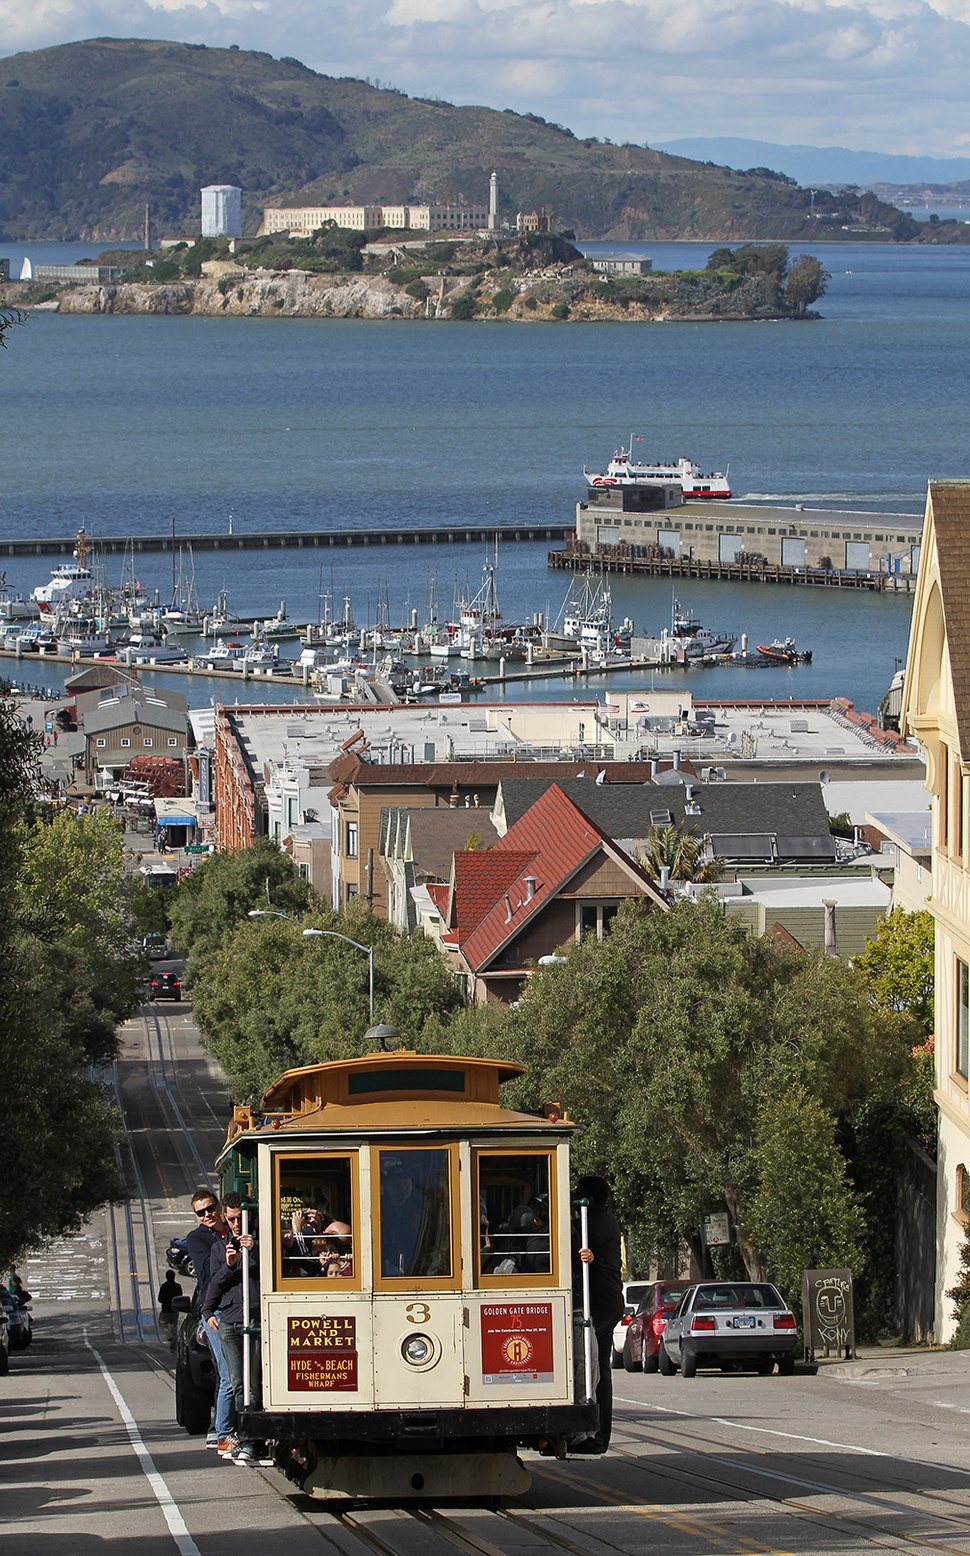 3 Cable Car on Hyde St with Alcatraz, SF, CA, jjron 25.03.2012